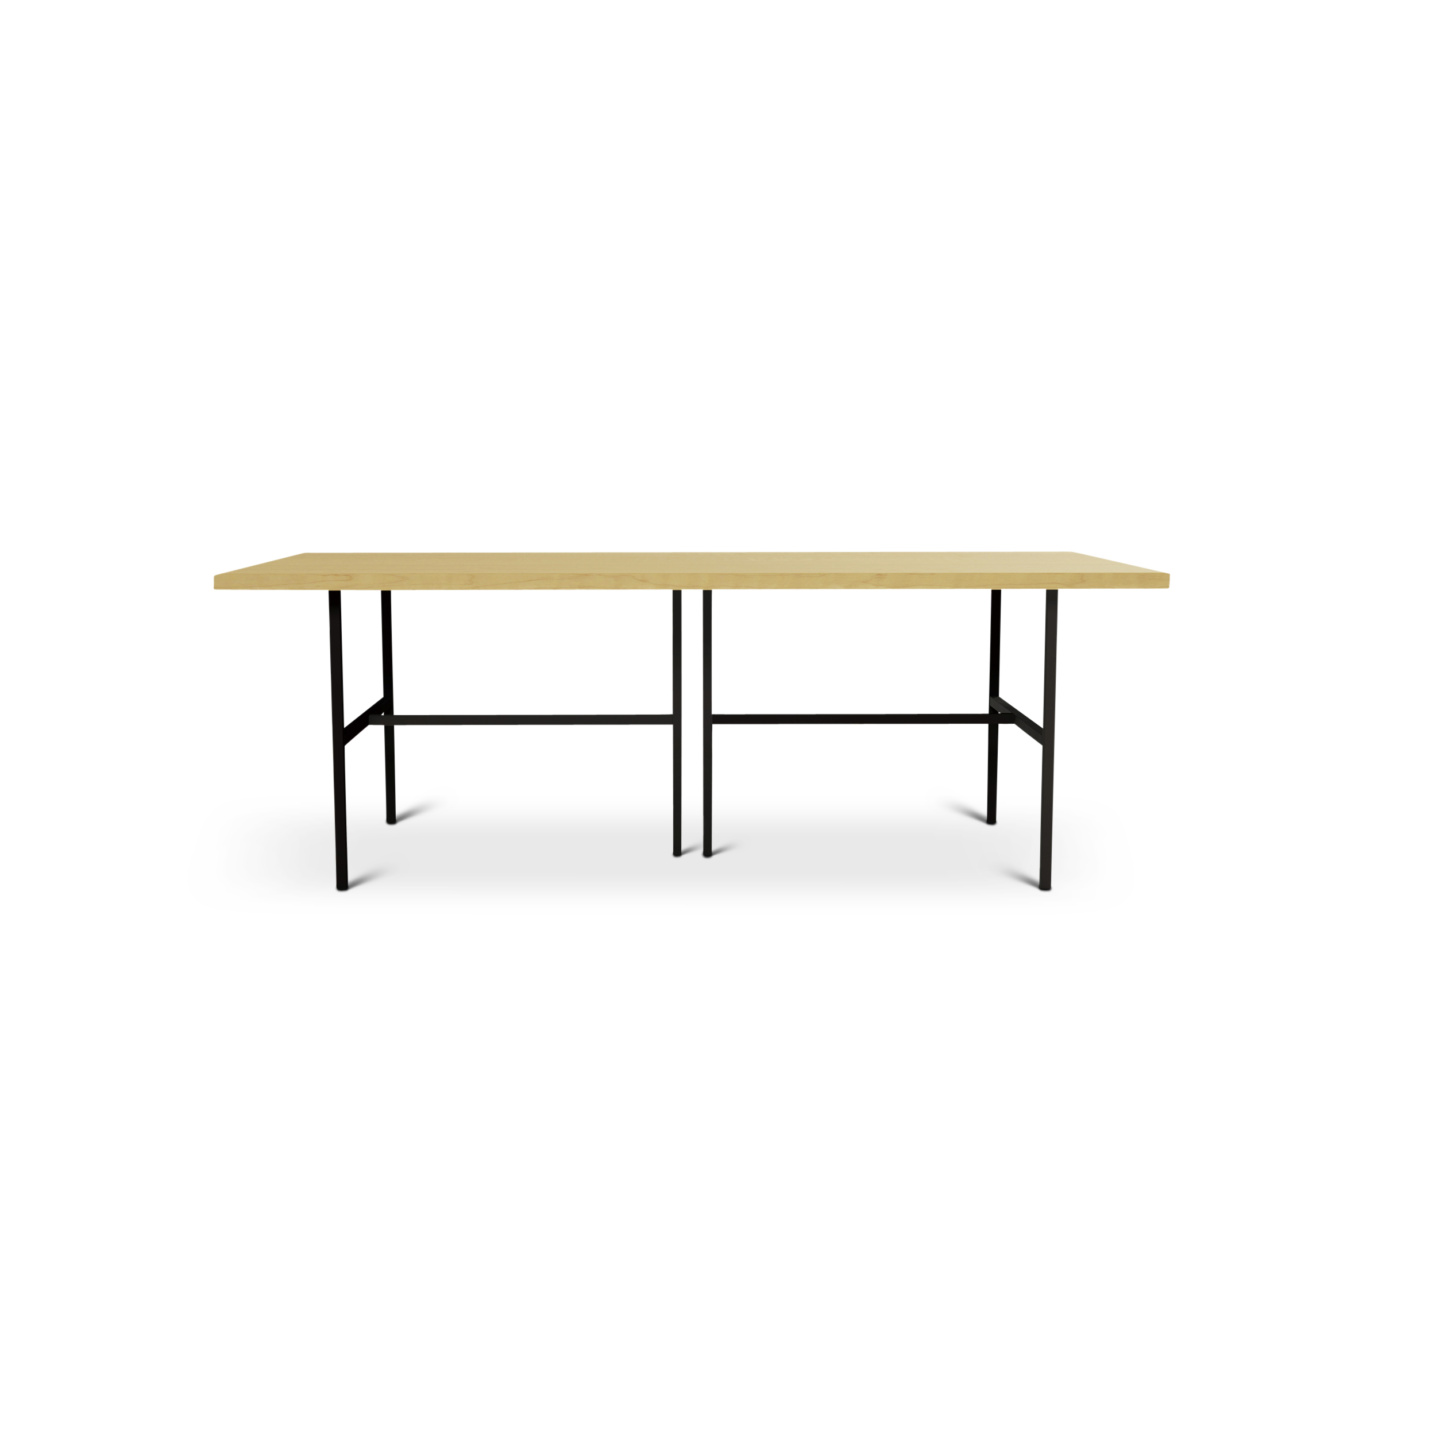 Solid maple dining room table with black metal legs